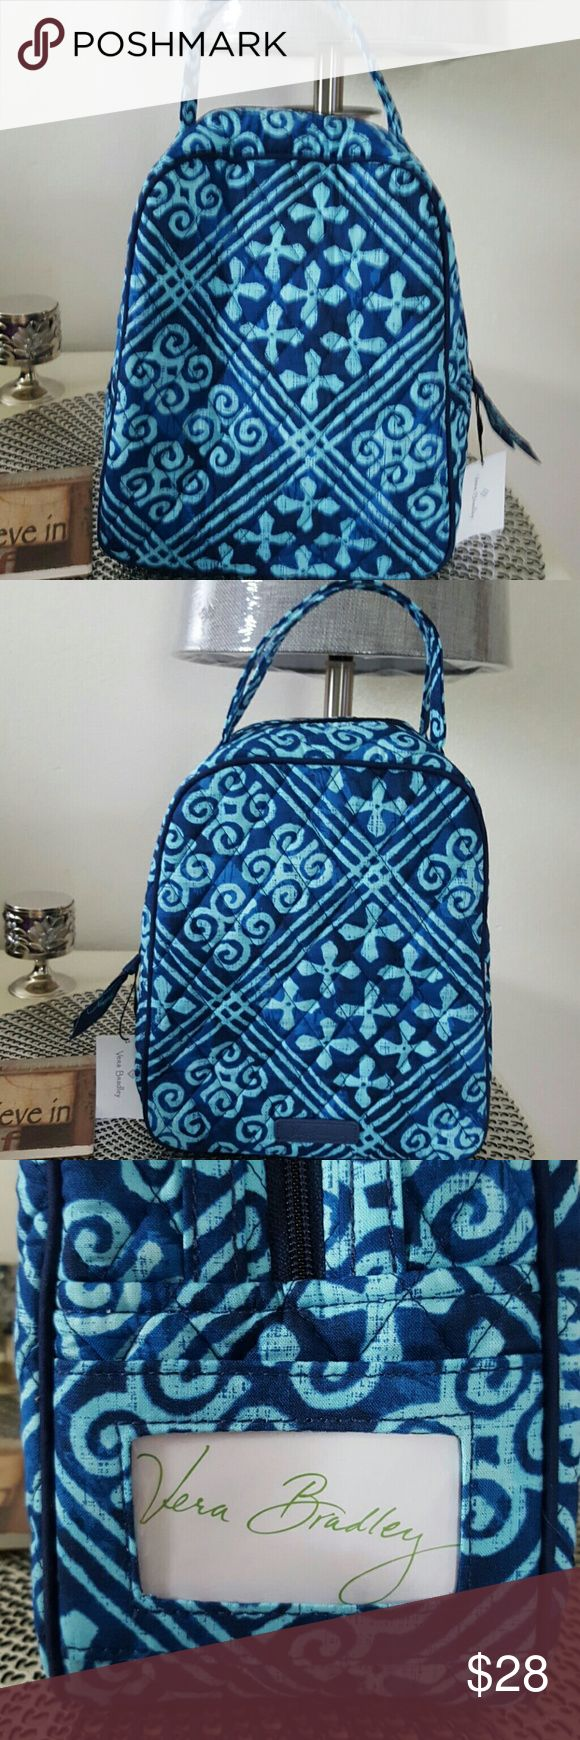 VERA BRADLEY LUNCH BAG Nwt.  CUBAN TILES pattern.  (Caribbean blues colors)  Lunch bag is plastic lined inside with a pocket.  On the side outside , it has a plastic coated ID slot with a card to put your name Vera Bradley Accessories